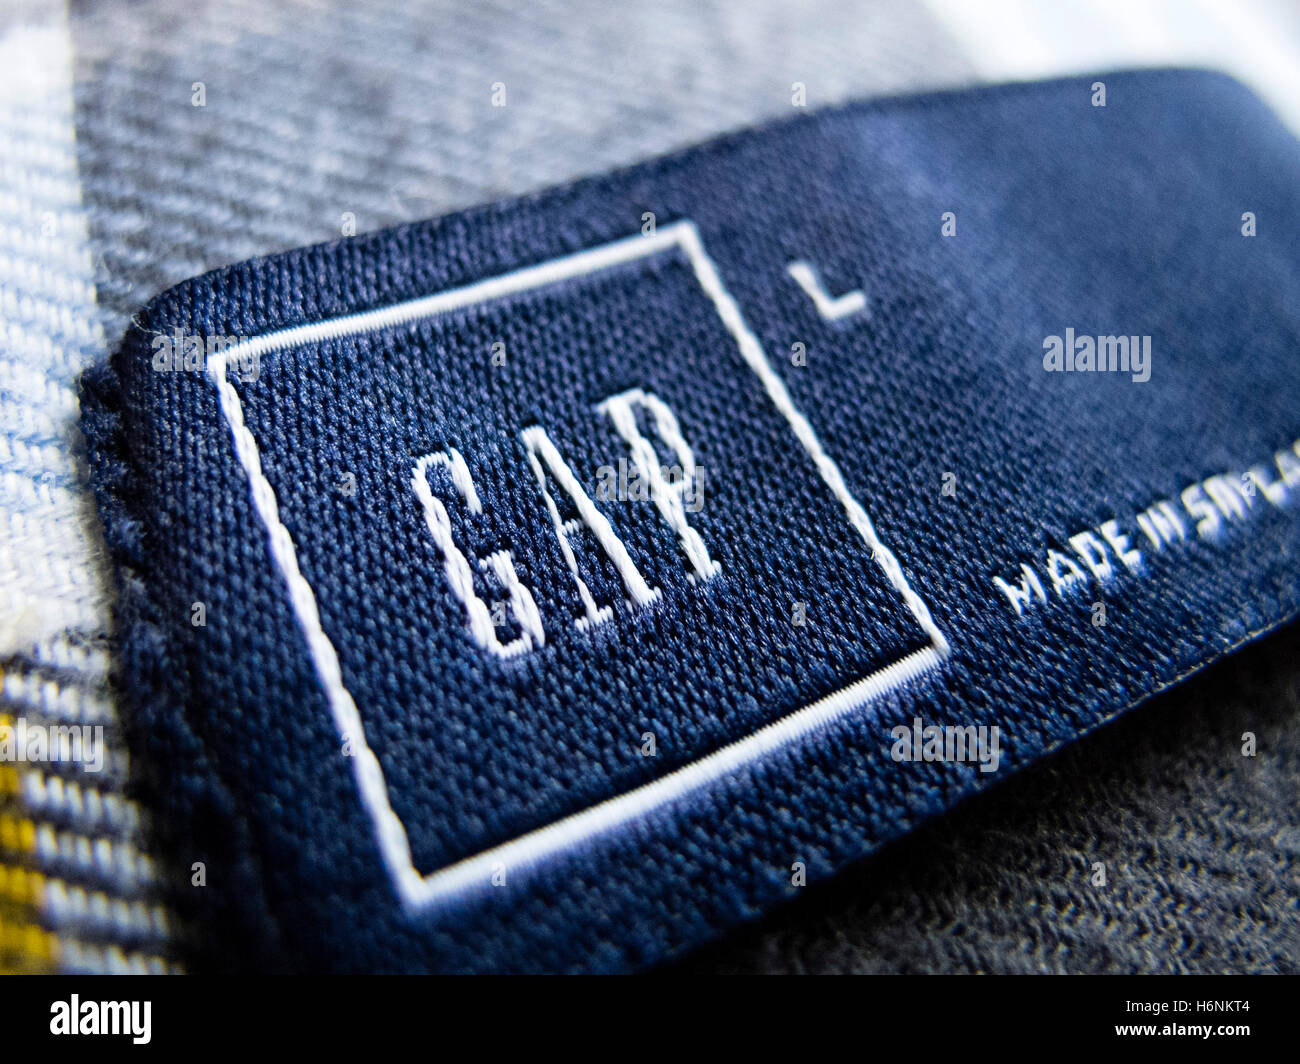 Detail of clothes label of GAP clothes retailer - Stock Image